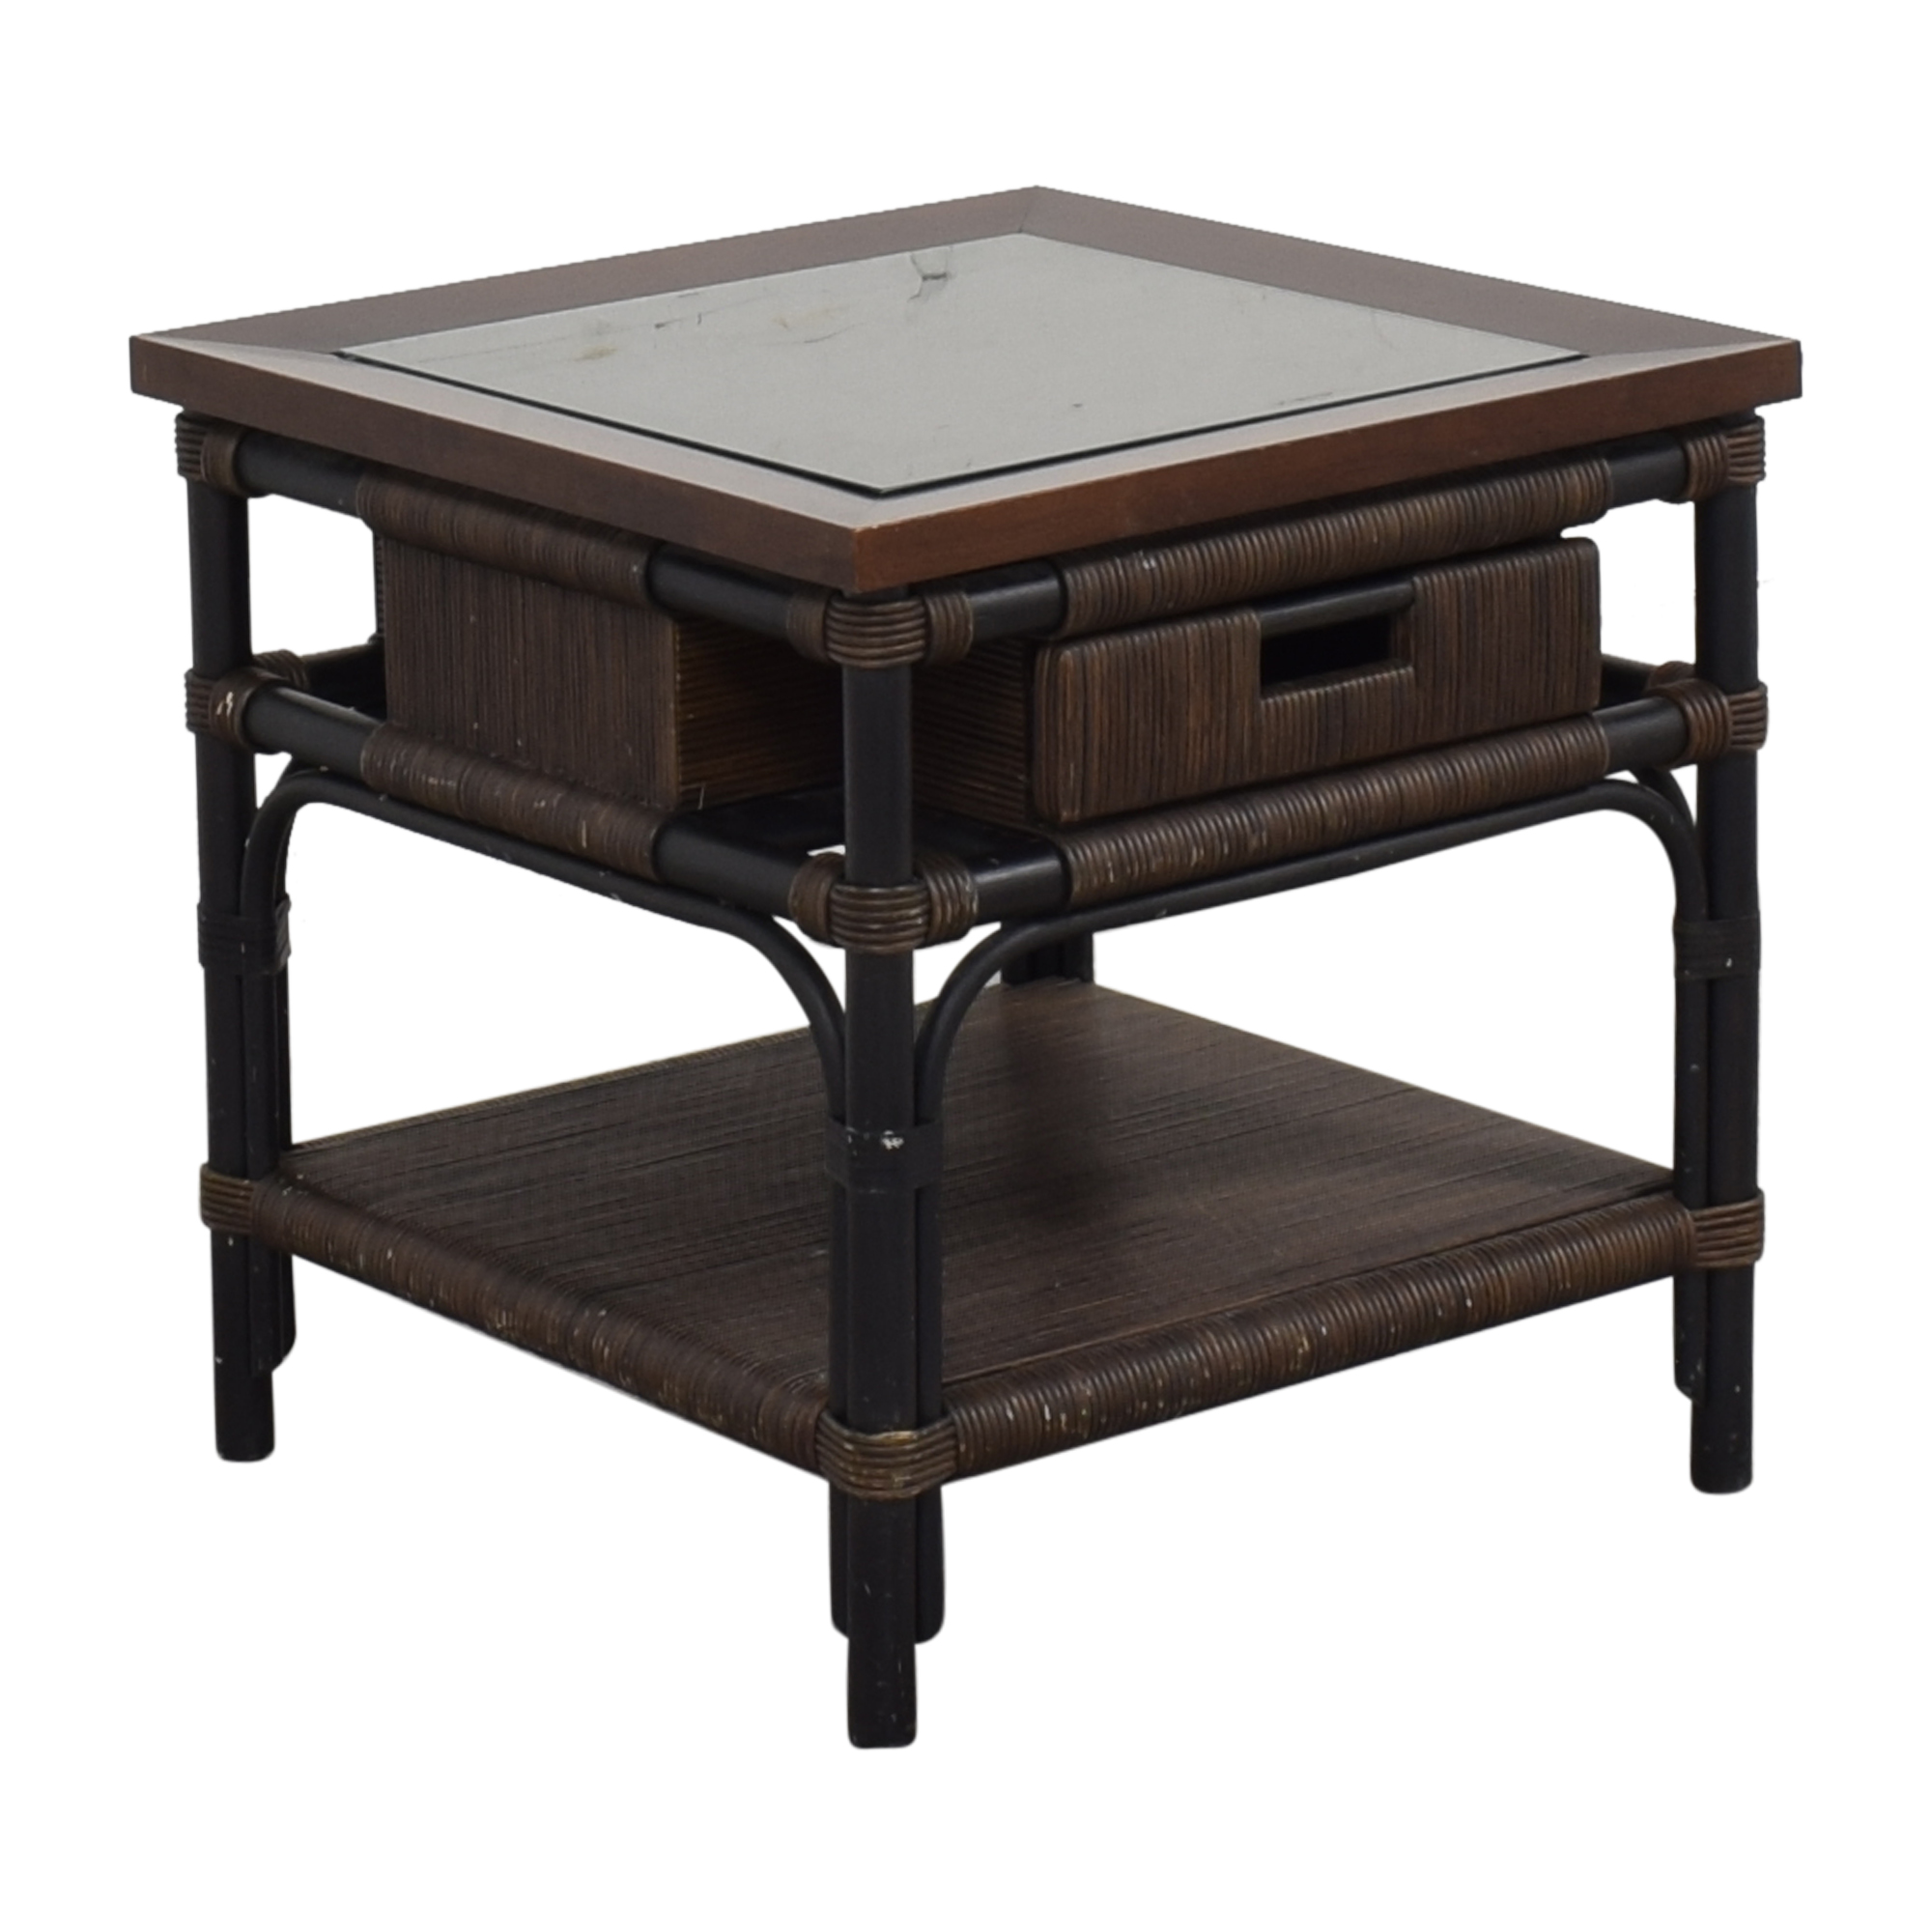 Donghia Modern Bamboo and Reed Table sale